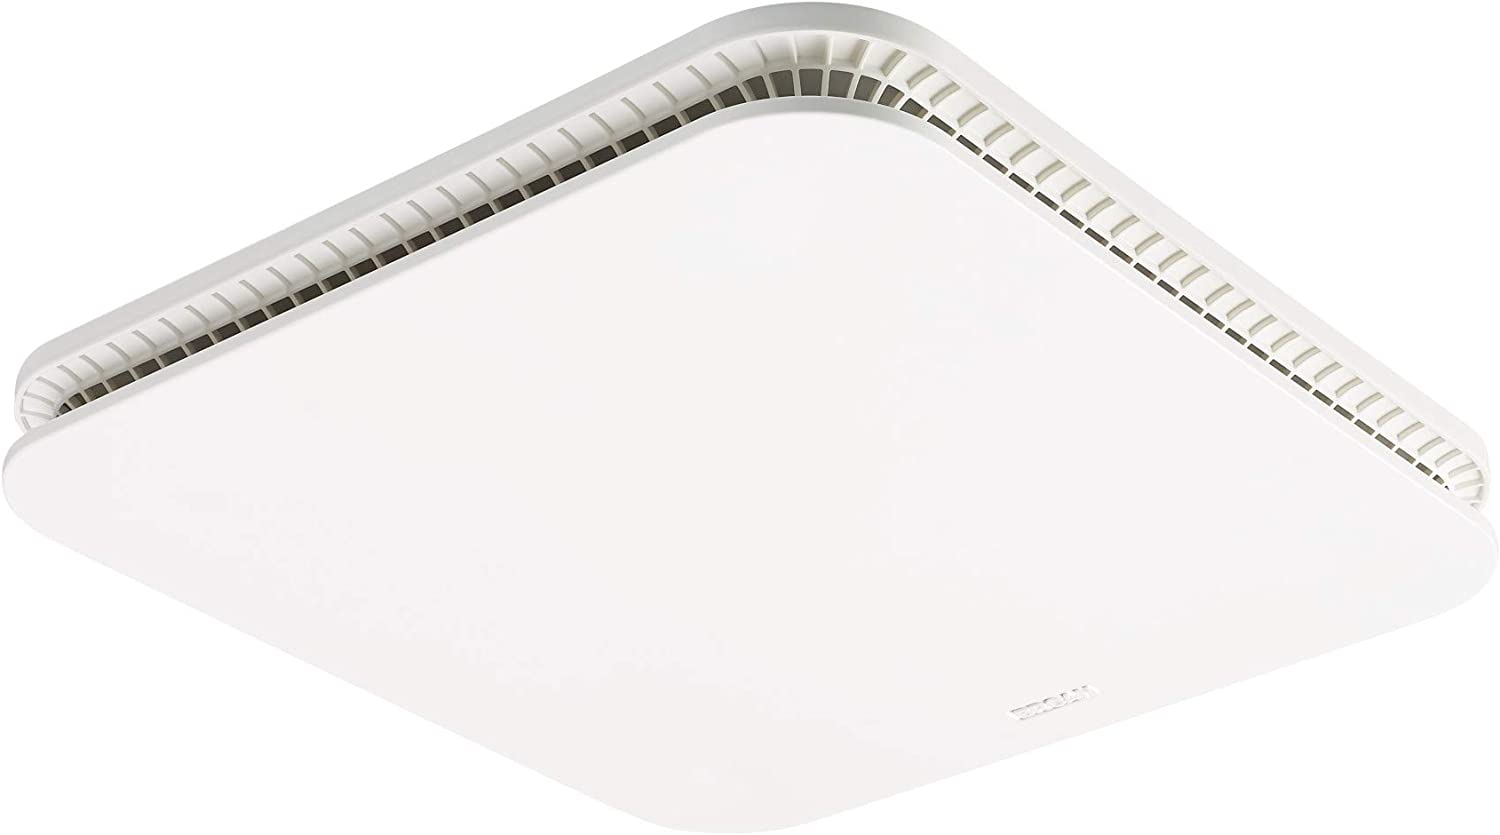 Broan-NuTone FG701S Universal CleanCover Bathroom Exhaust Upgrade Grille Cover, White Bath Fan